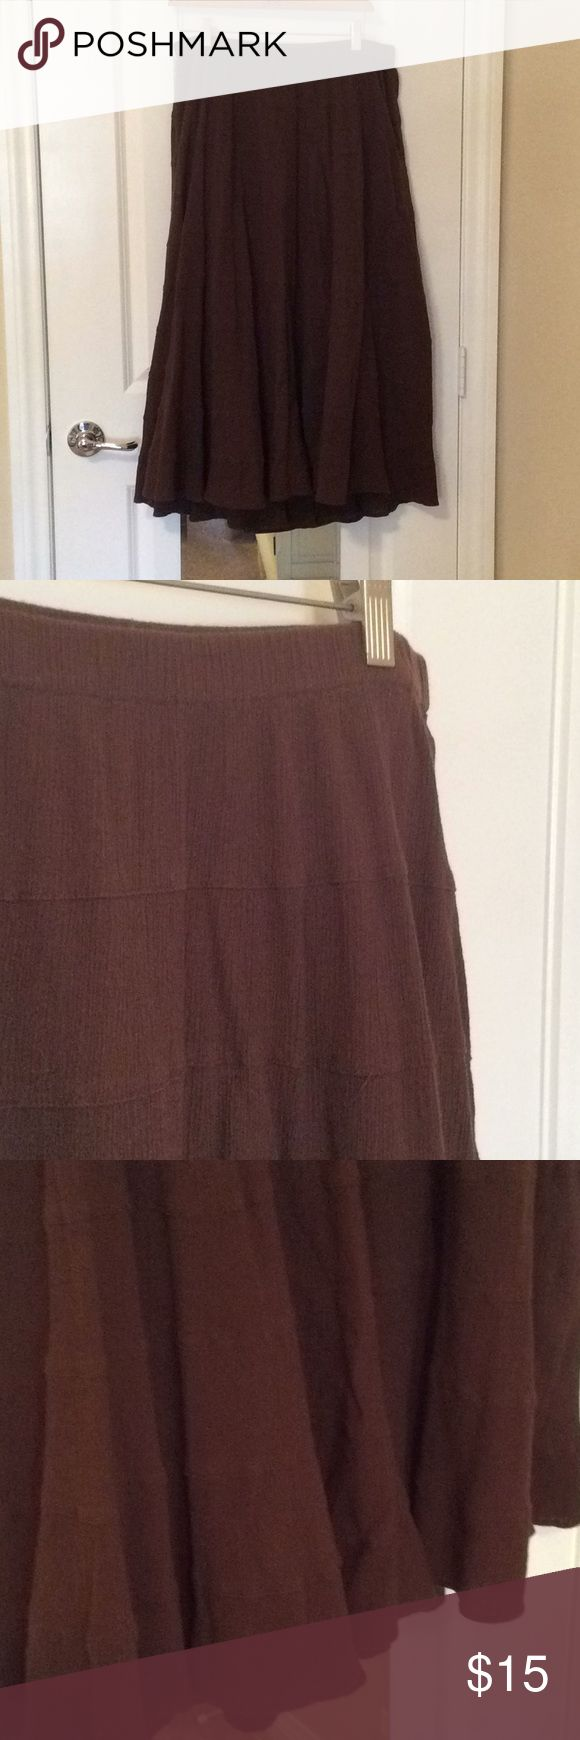 Liz & Me Milk Chocolate Brown Long Skirt Gently worn, Liz & Me milk chocolate brown long skirt.  100% cotton with elastic waist.  Greta the condition.  Layered look and very flowing. Liz & Me Skirts A-Line or Full